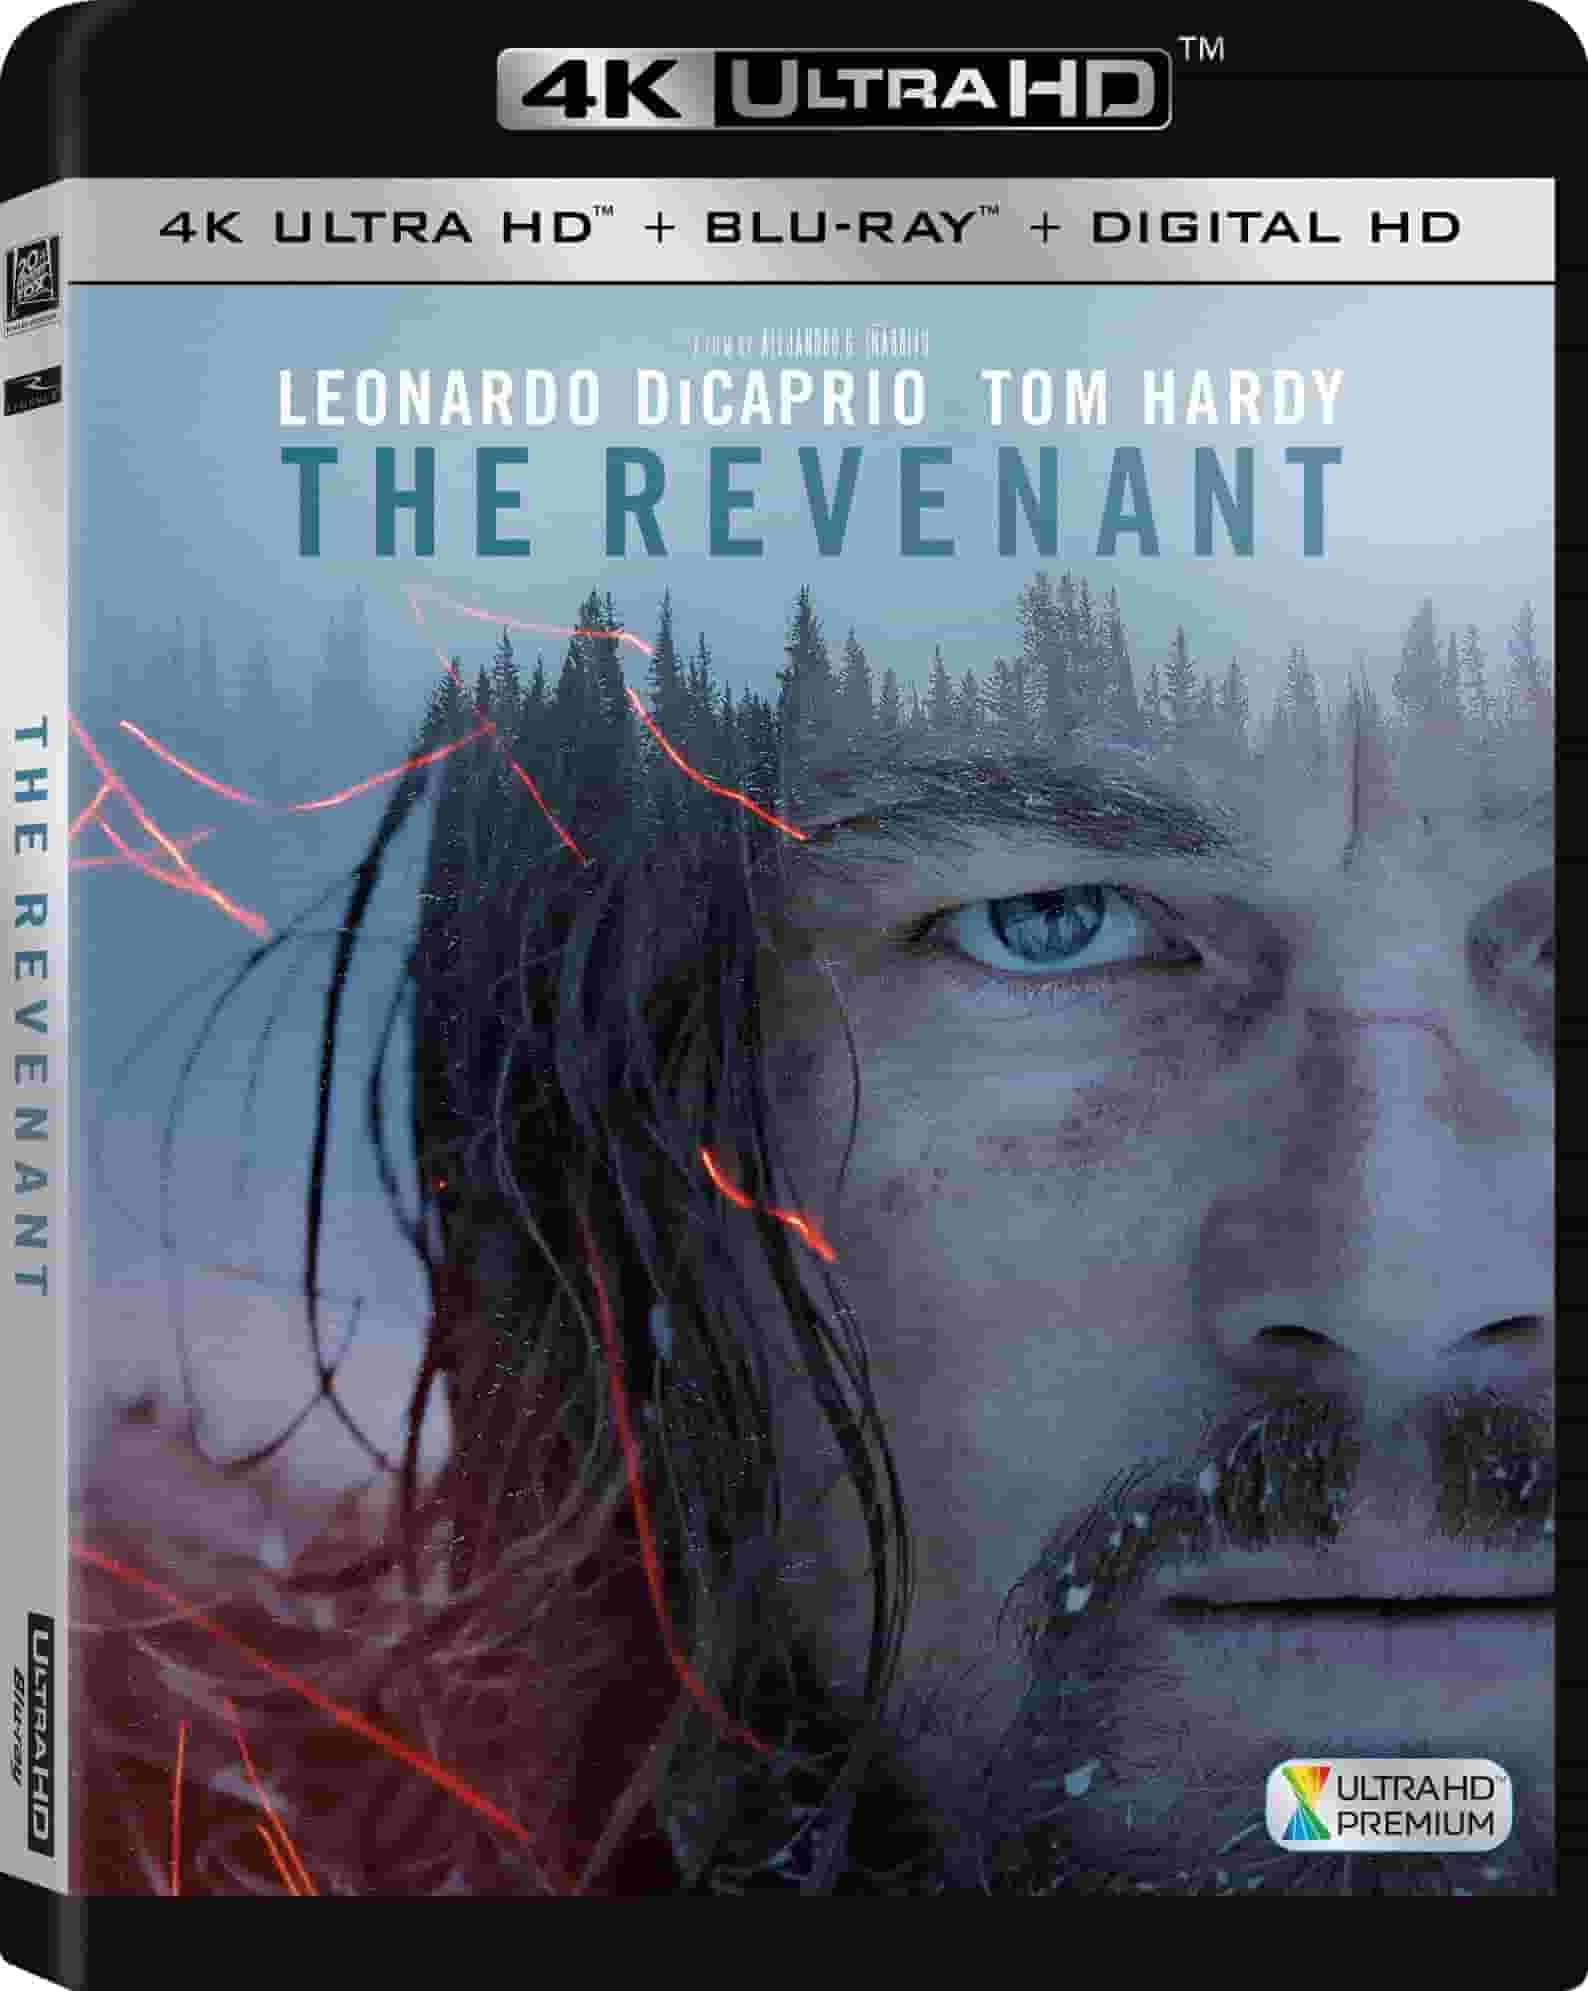 The Revenant (2015) 2160p BluRay + REMUX HDR10 » Download Movies 4K